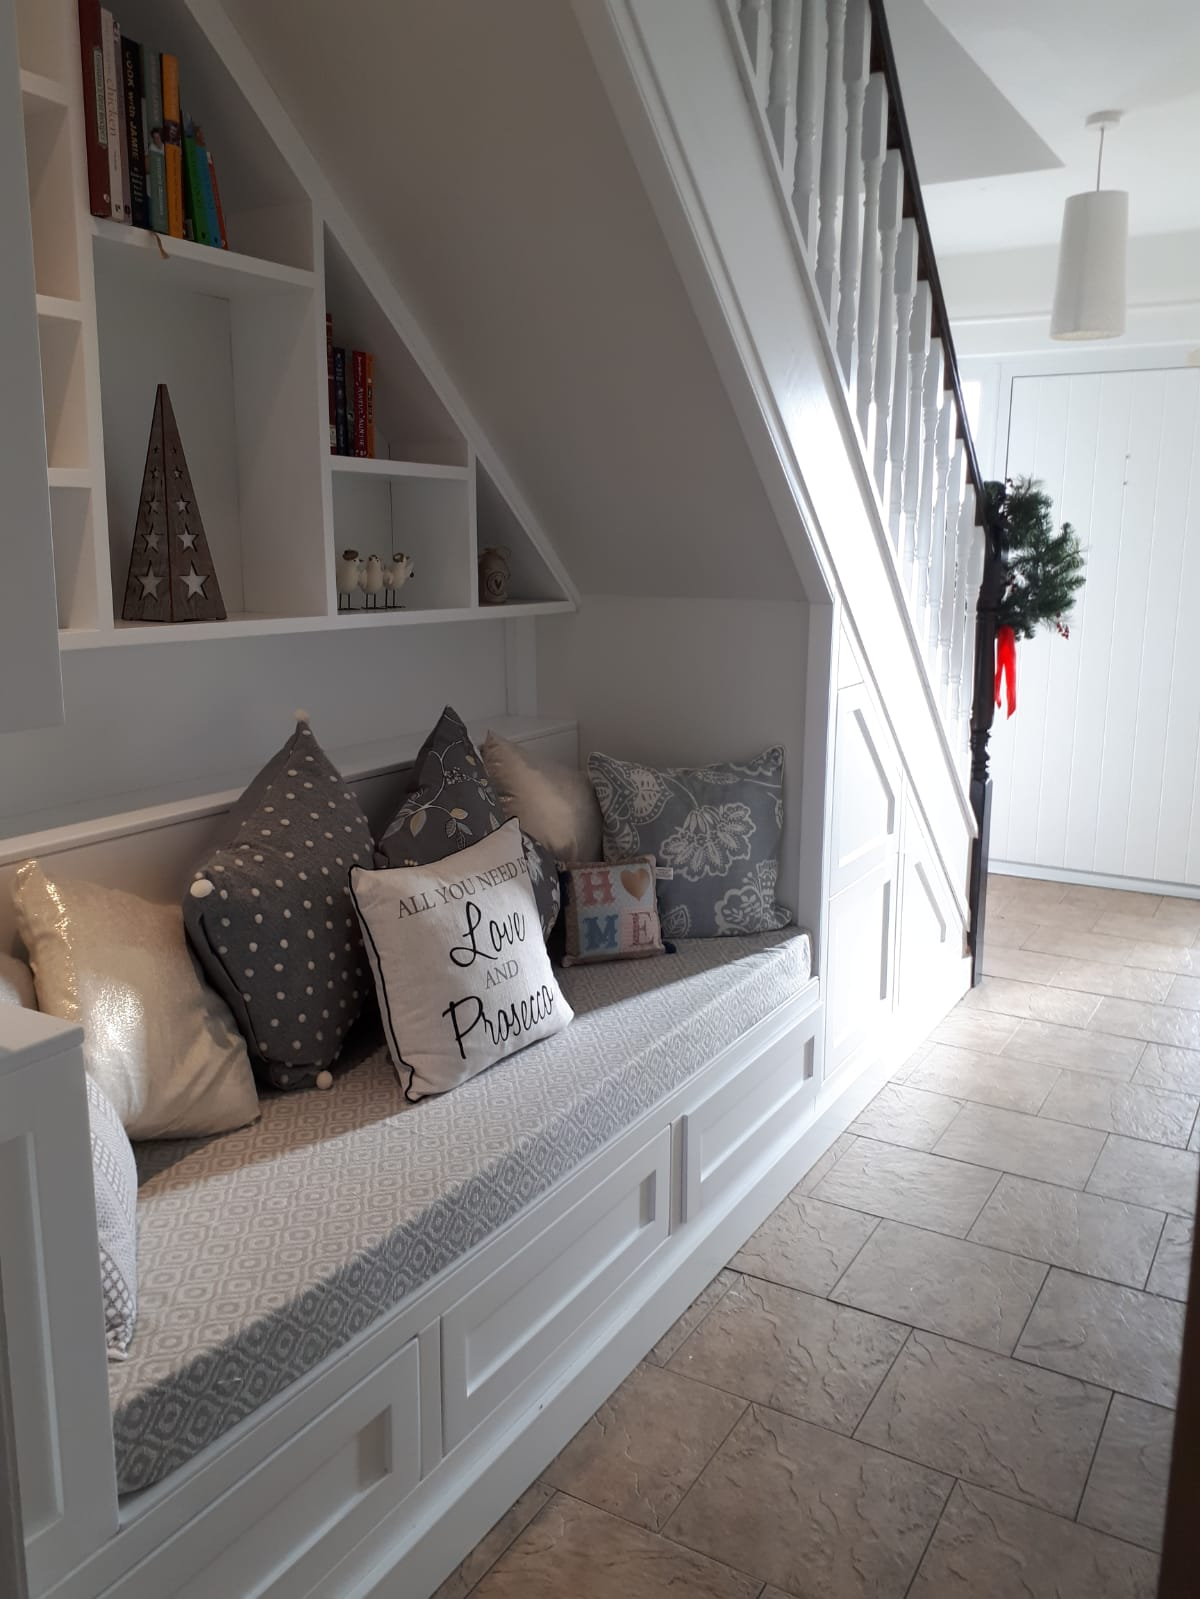 Six drawers and bookcase on the wall